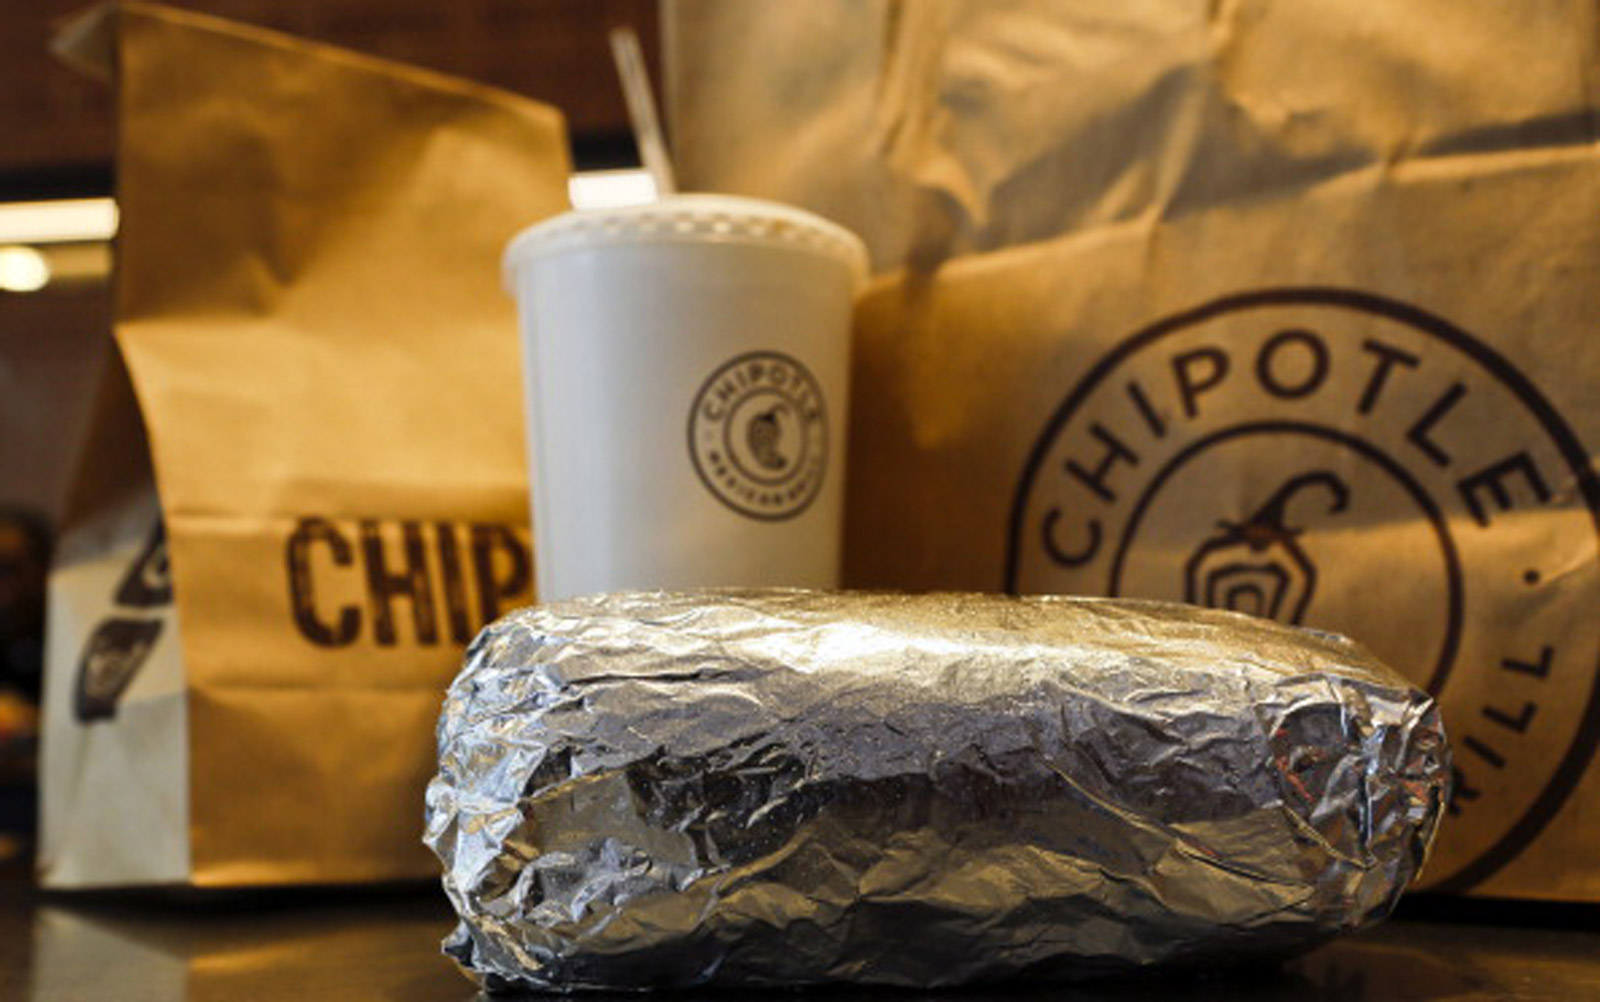 Don't Miss Out on Your Chance to Win Free Chipotle Burritos for a Year